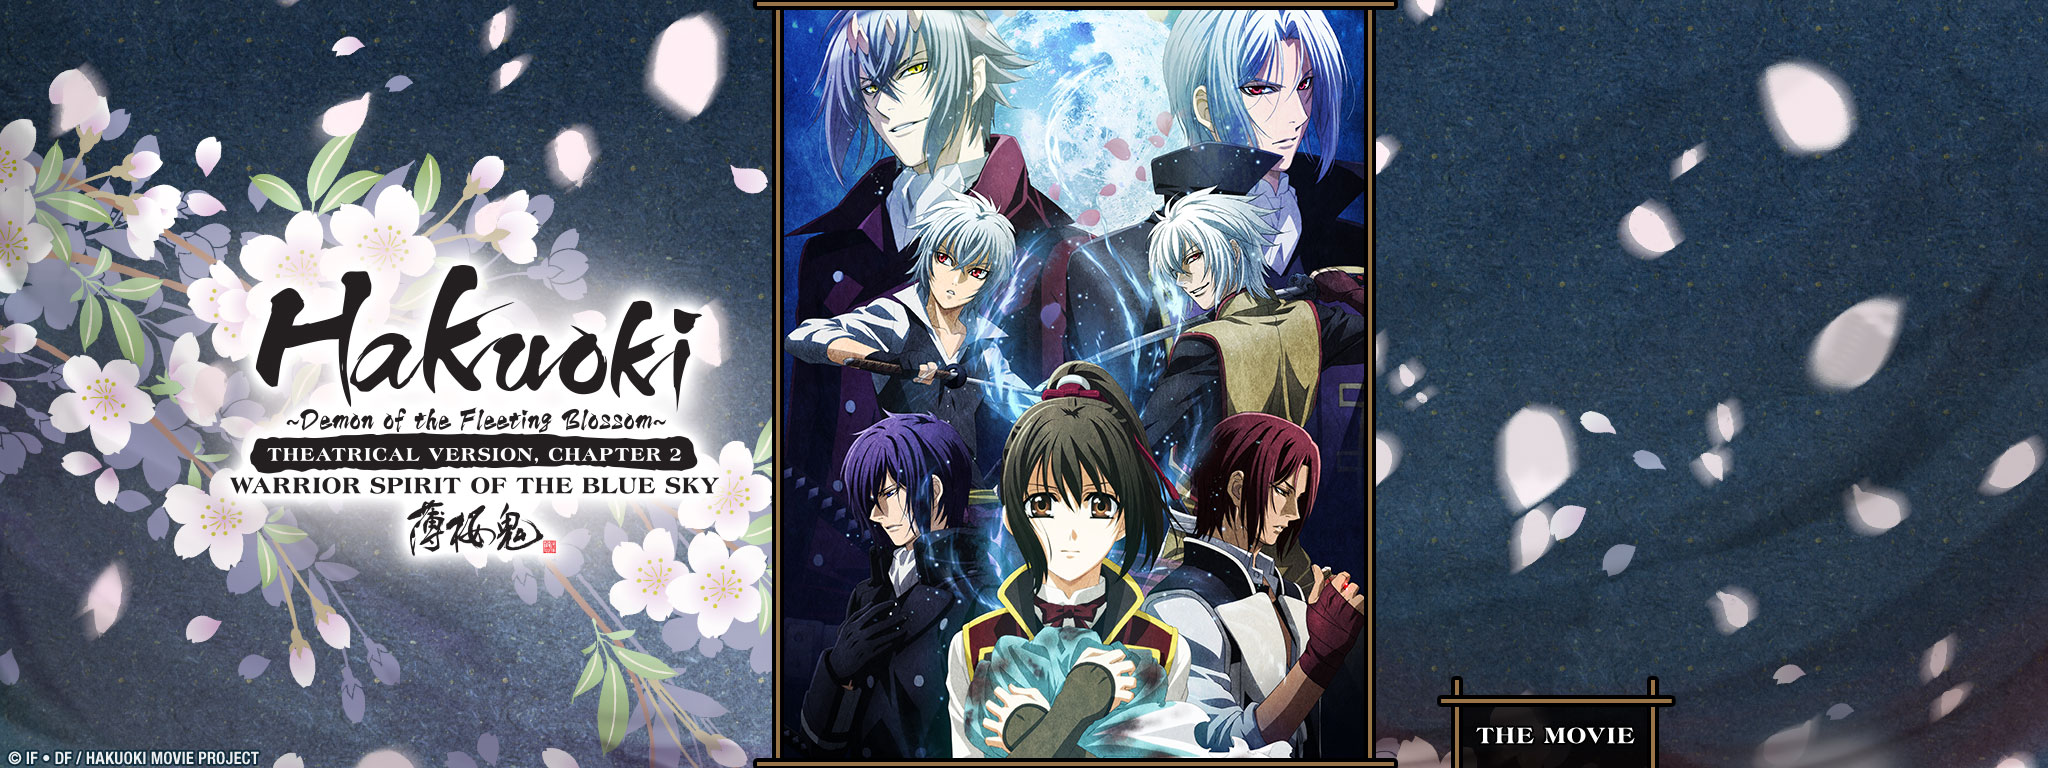 Hakuoki - Theatrical Version, Chapter 2: Warrior Spirit of the Blue Sky